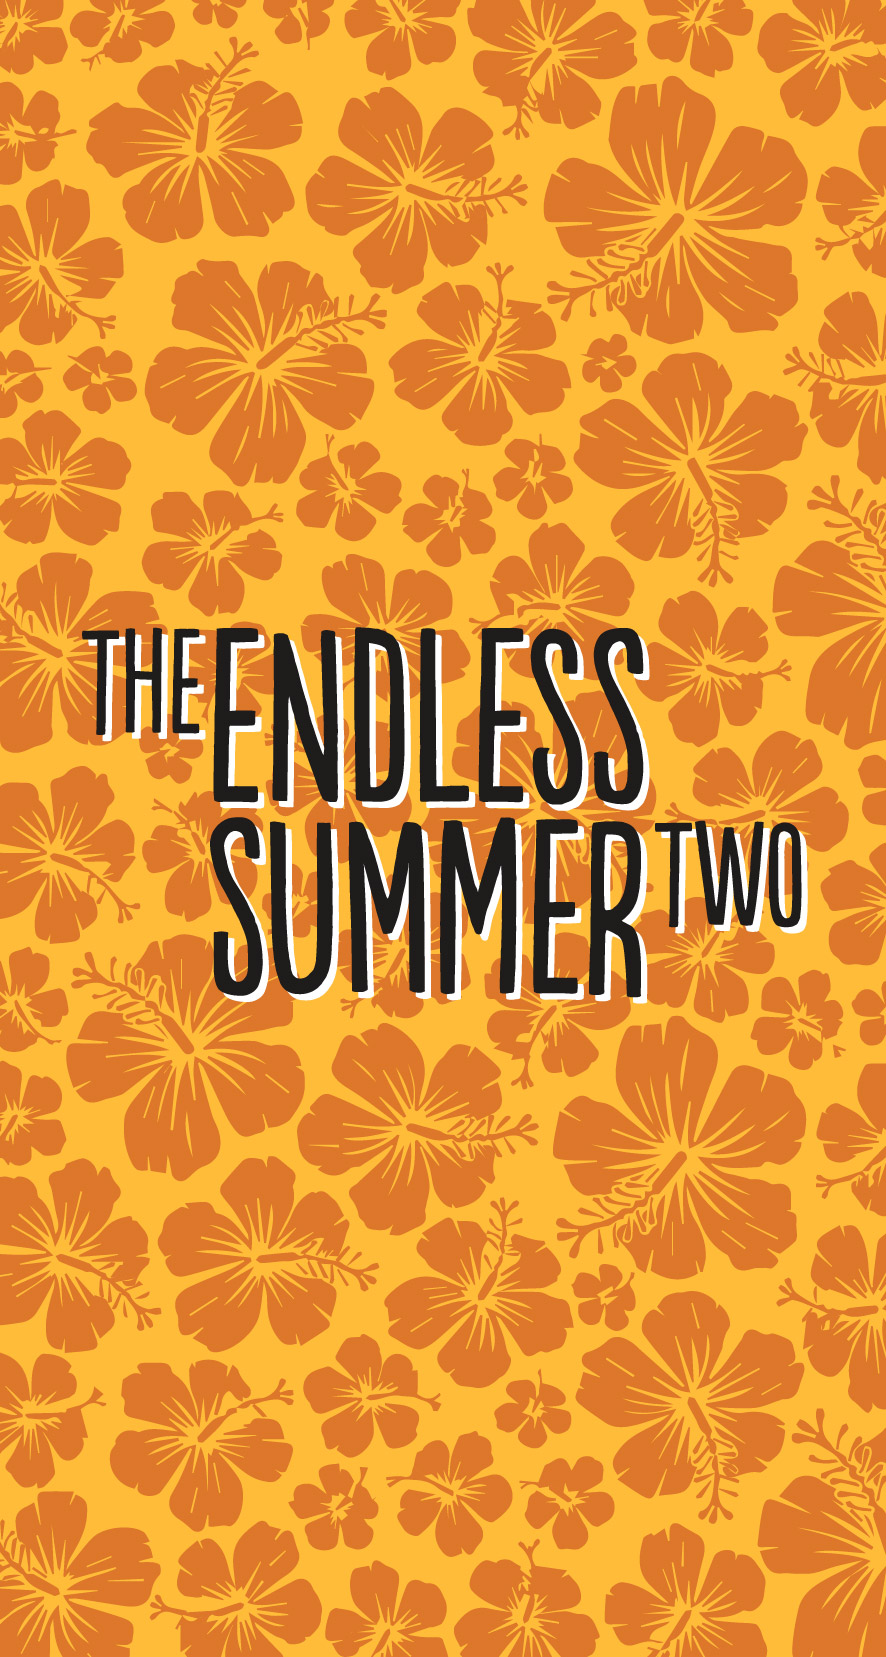 The Endless Summer 2 1994